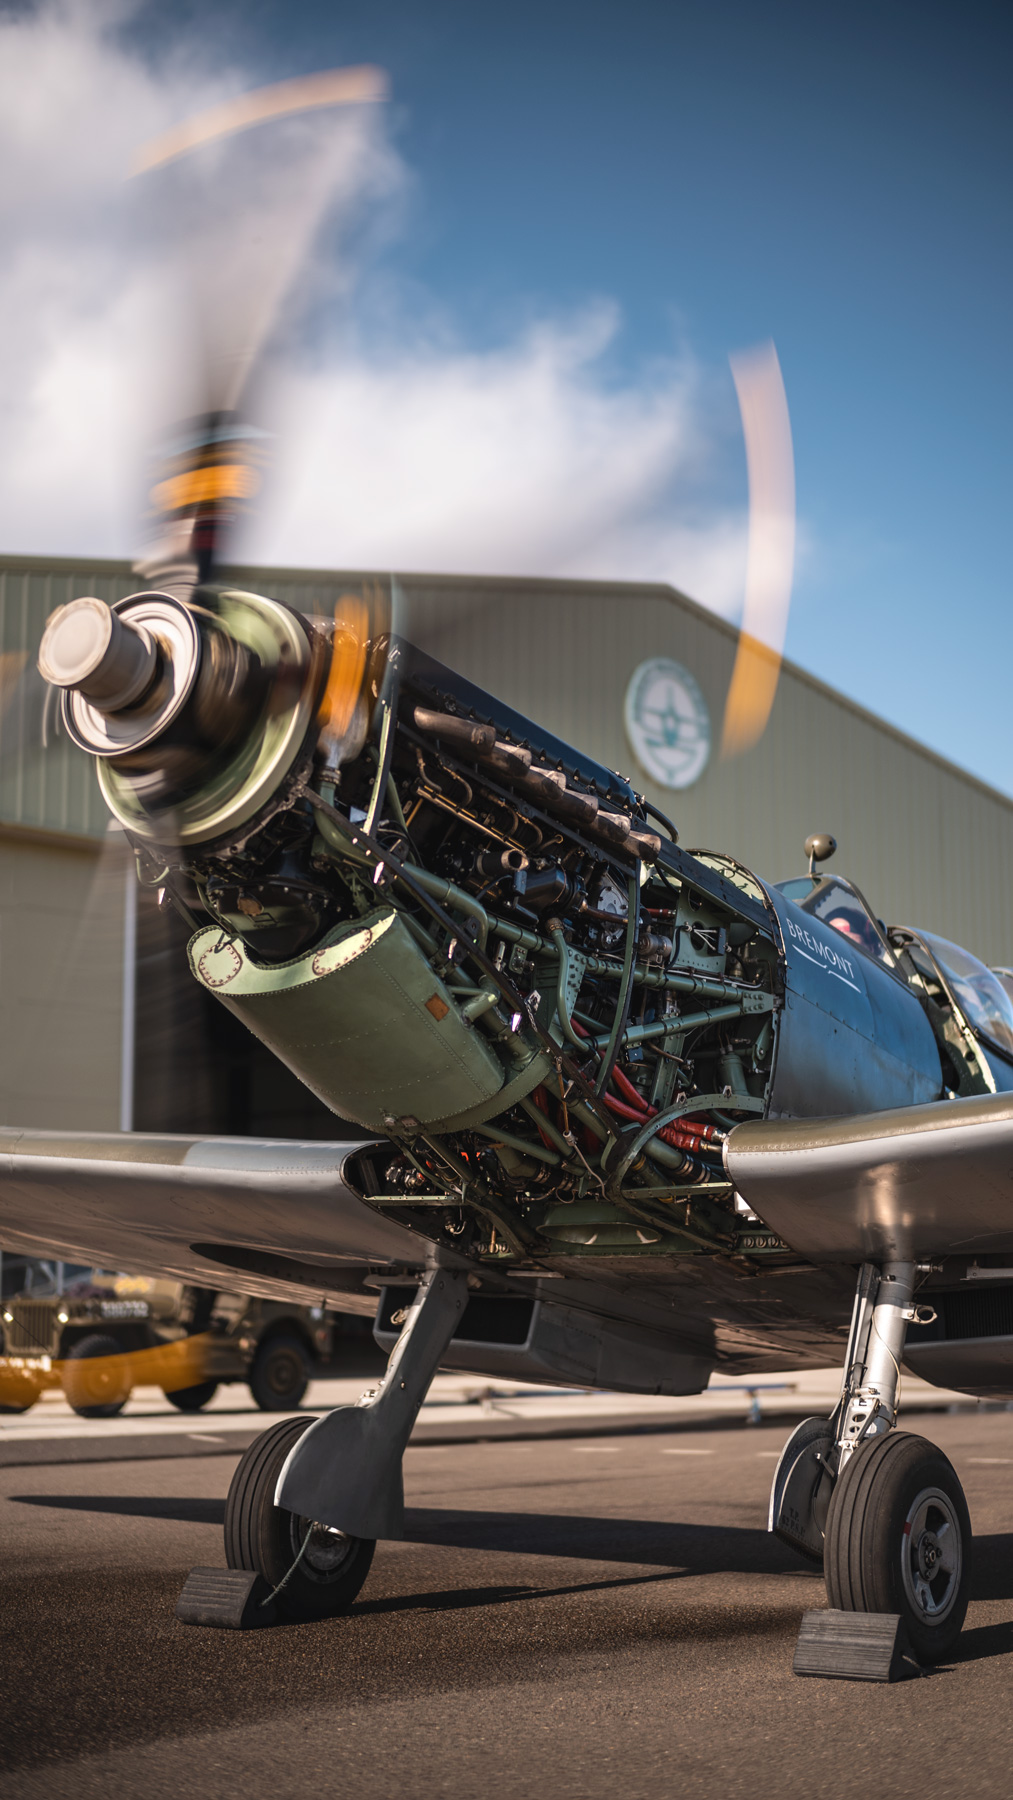 ARCo-Spitfire-PV202-engineering-maintenance.jpg